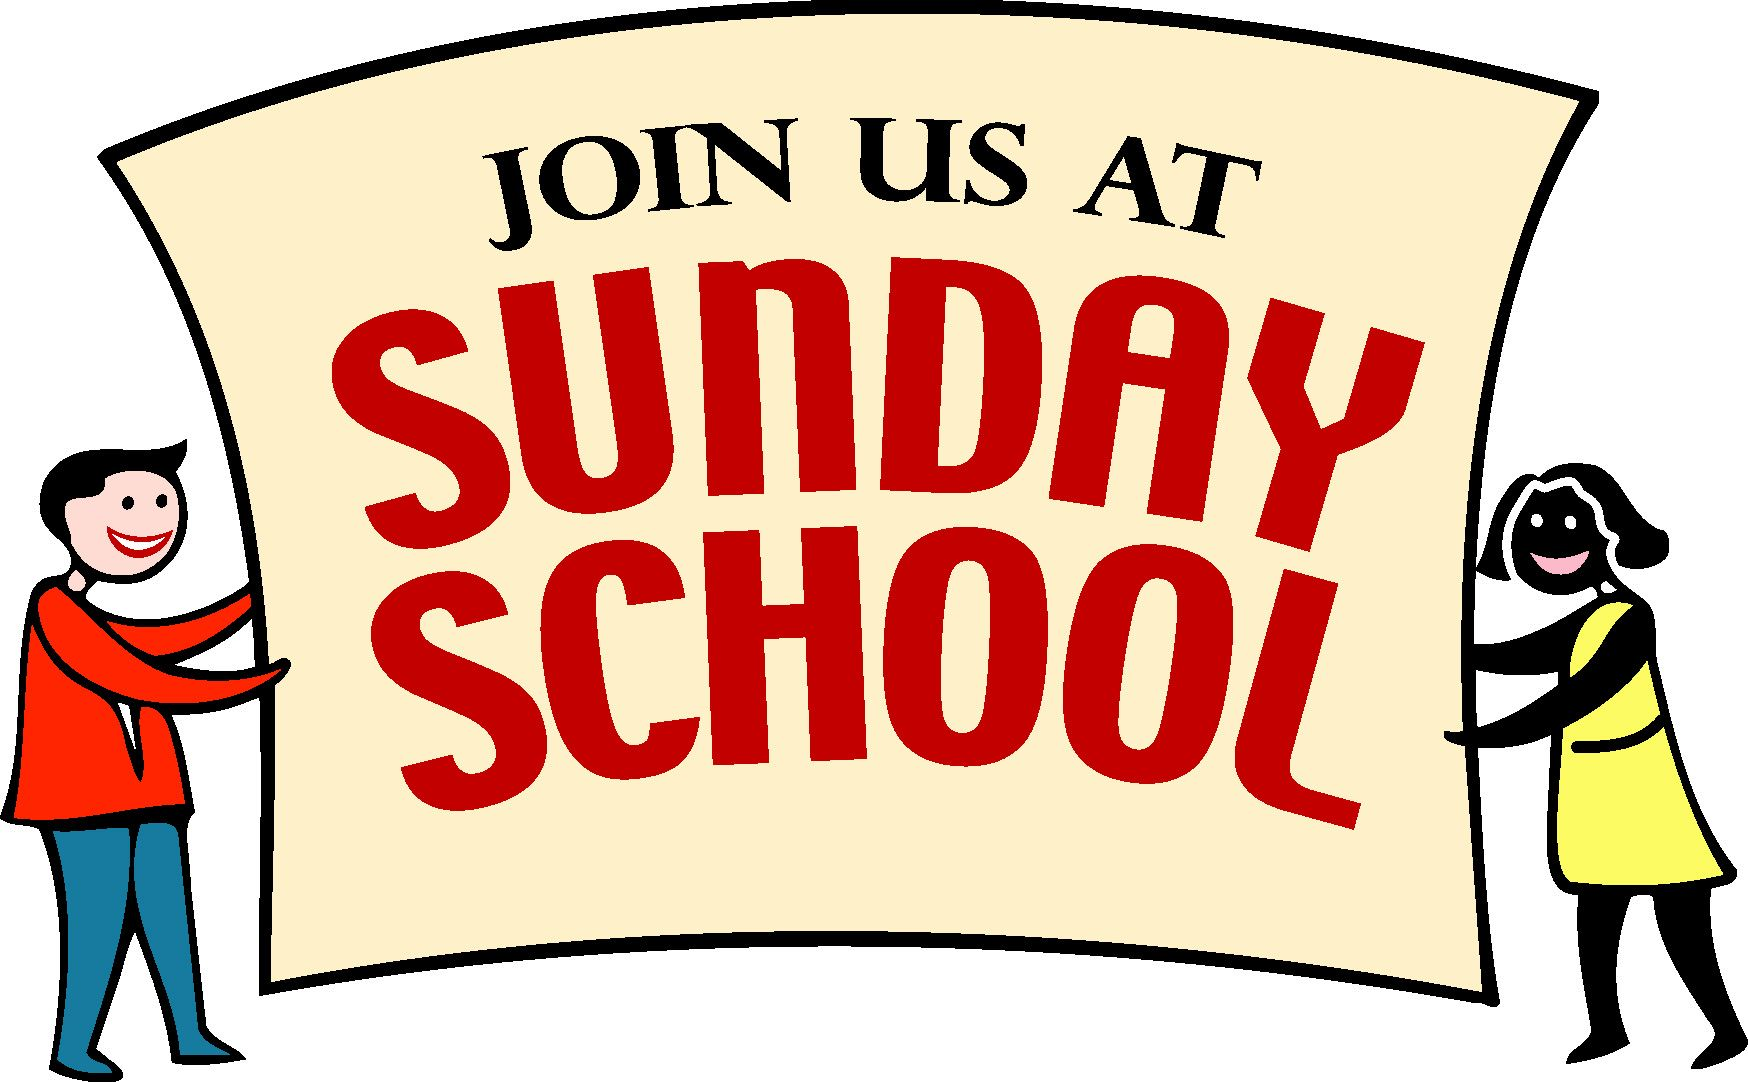 sunday school clip art clipart panda free clipart images rh pinterest com sunday school clipart public domain sunday school clipart black and white